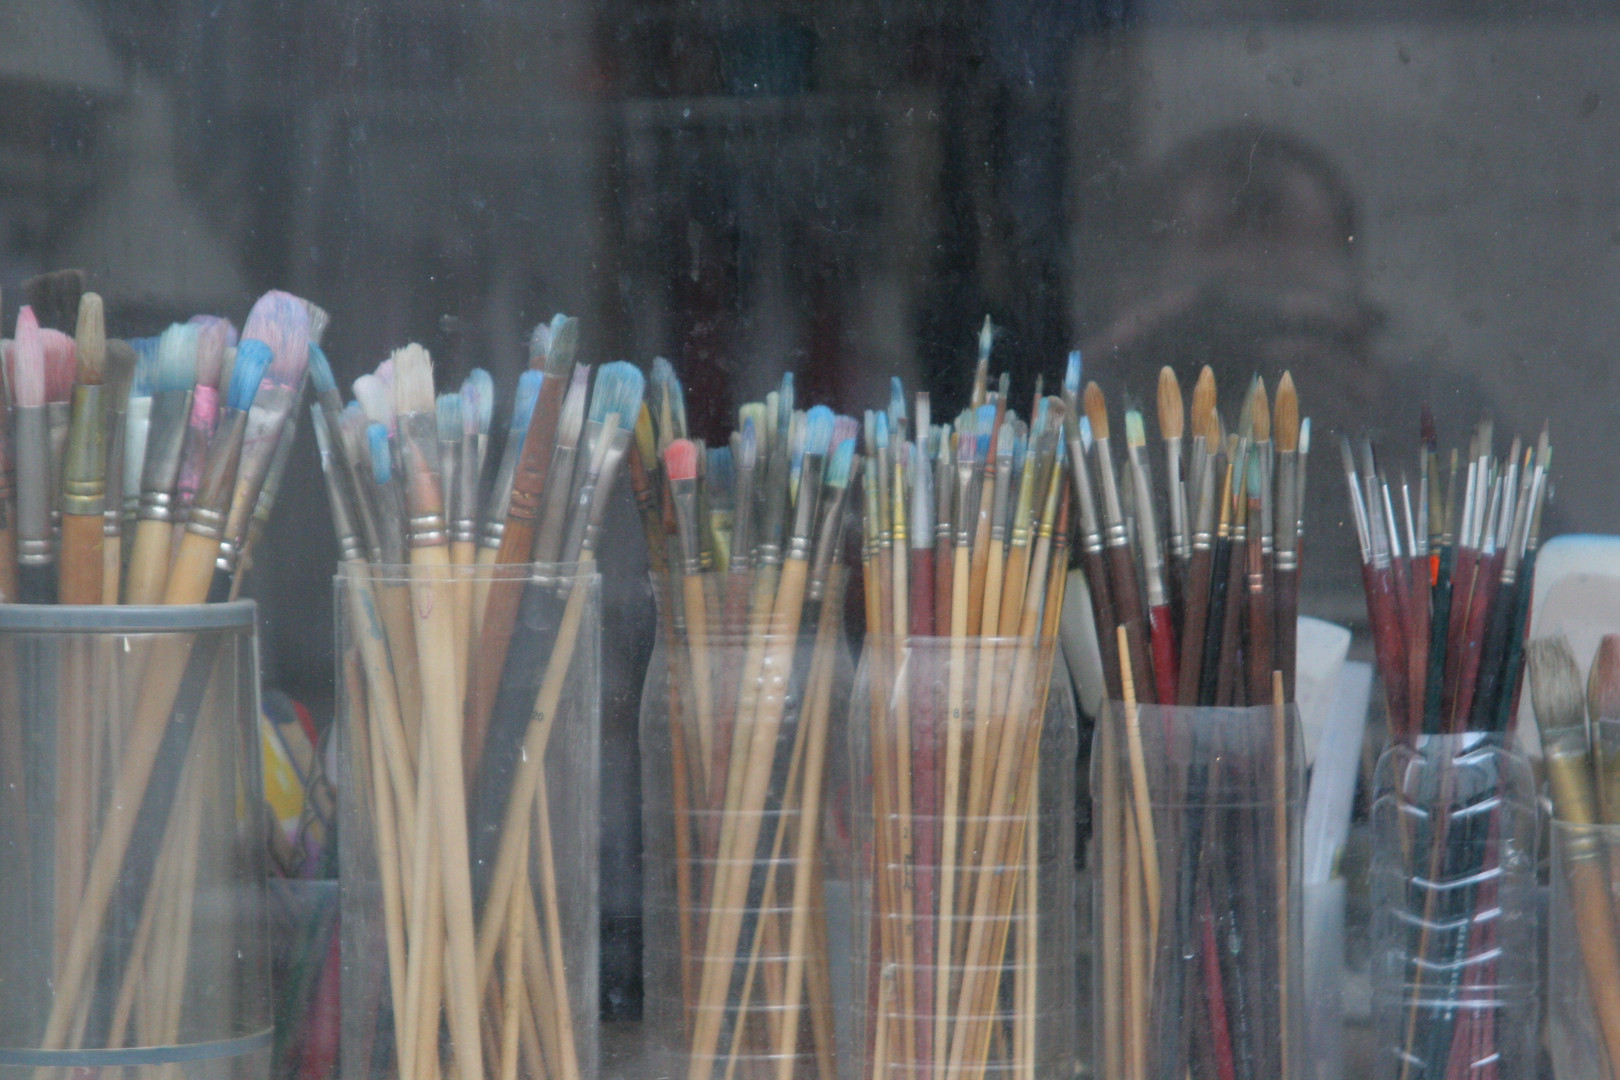 Paris_75018_Paint_brushes_behind_a_windo